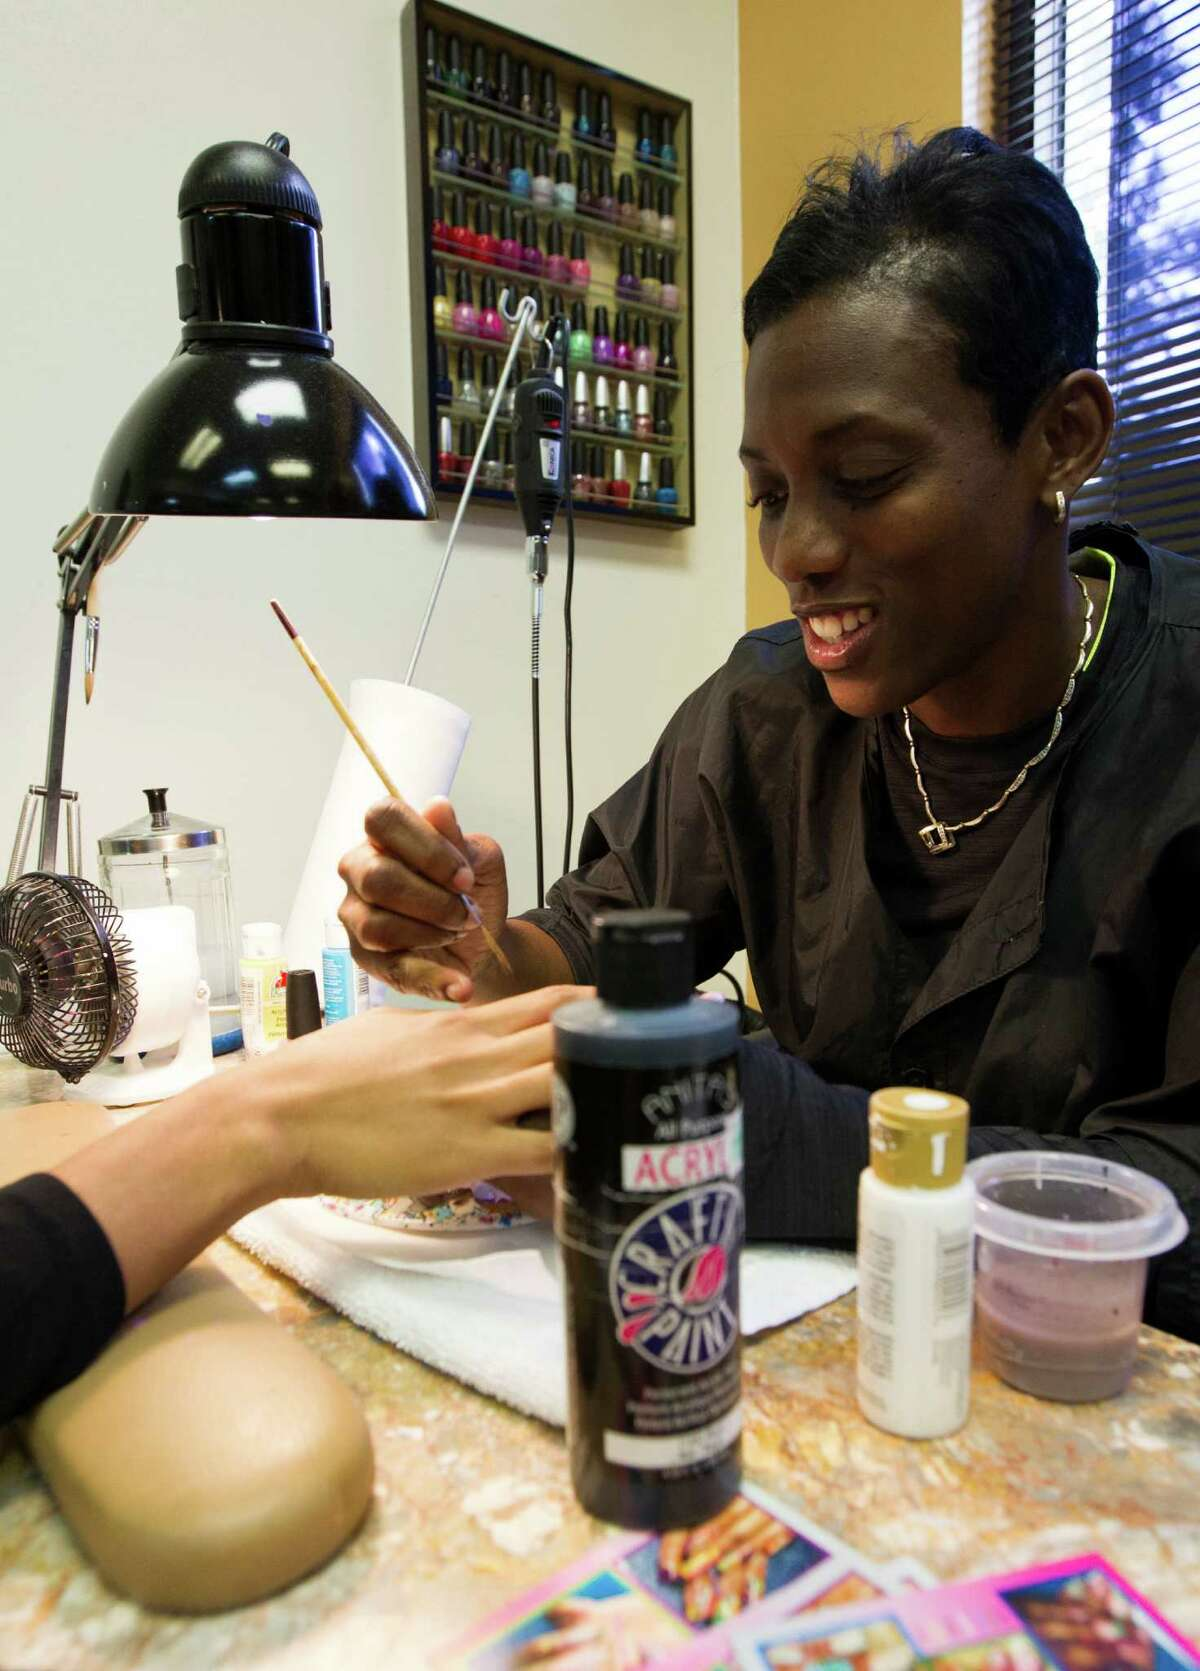 Lisa Beverley, mother of the Rockets' Pat Beverley, works at her salon, Just Tipz and Toez Nail Salon, which Lisa bought with money Pat sent her while overseas.